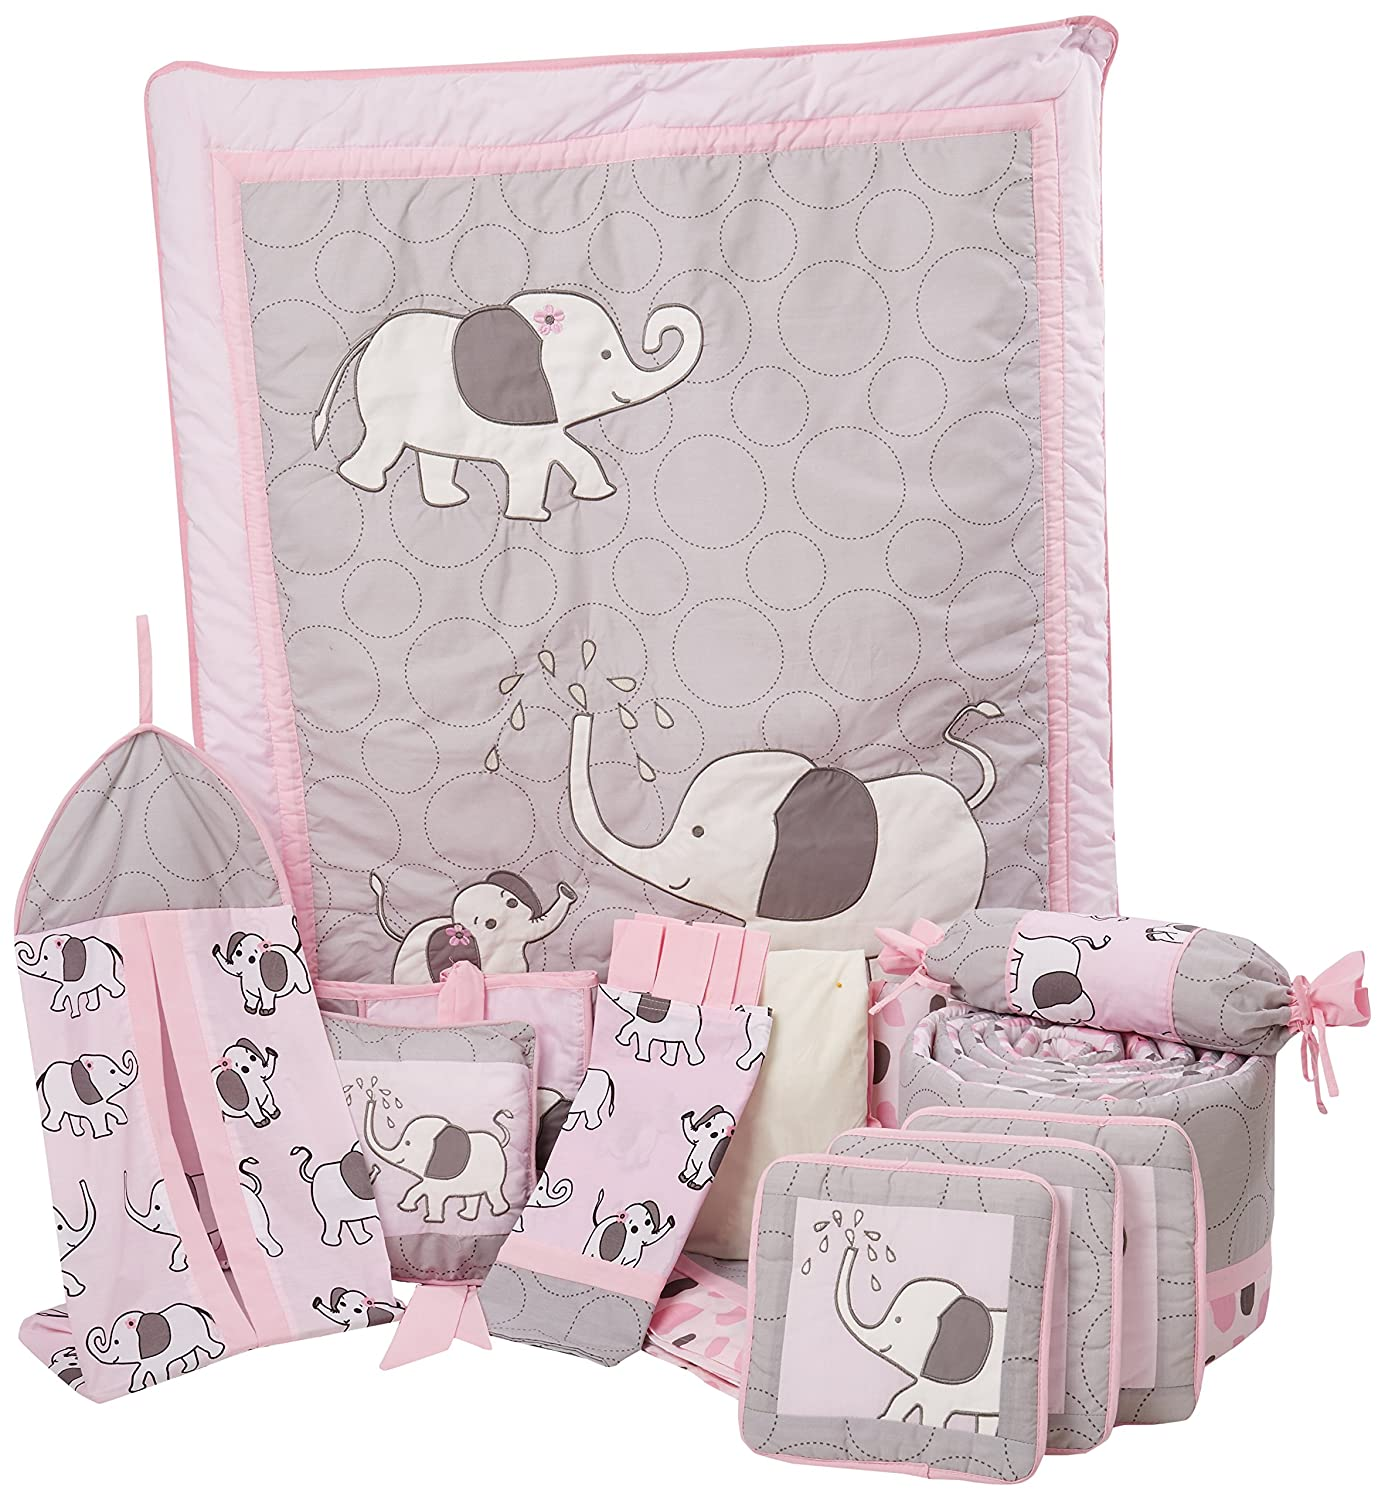 Boutique Pink Gray Elephant 13pcs Crib Bedding Sets GEENNY CRIB-CF-2069